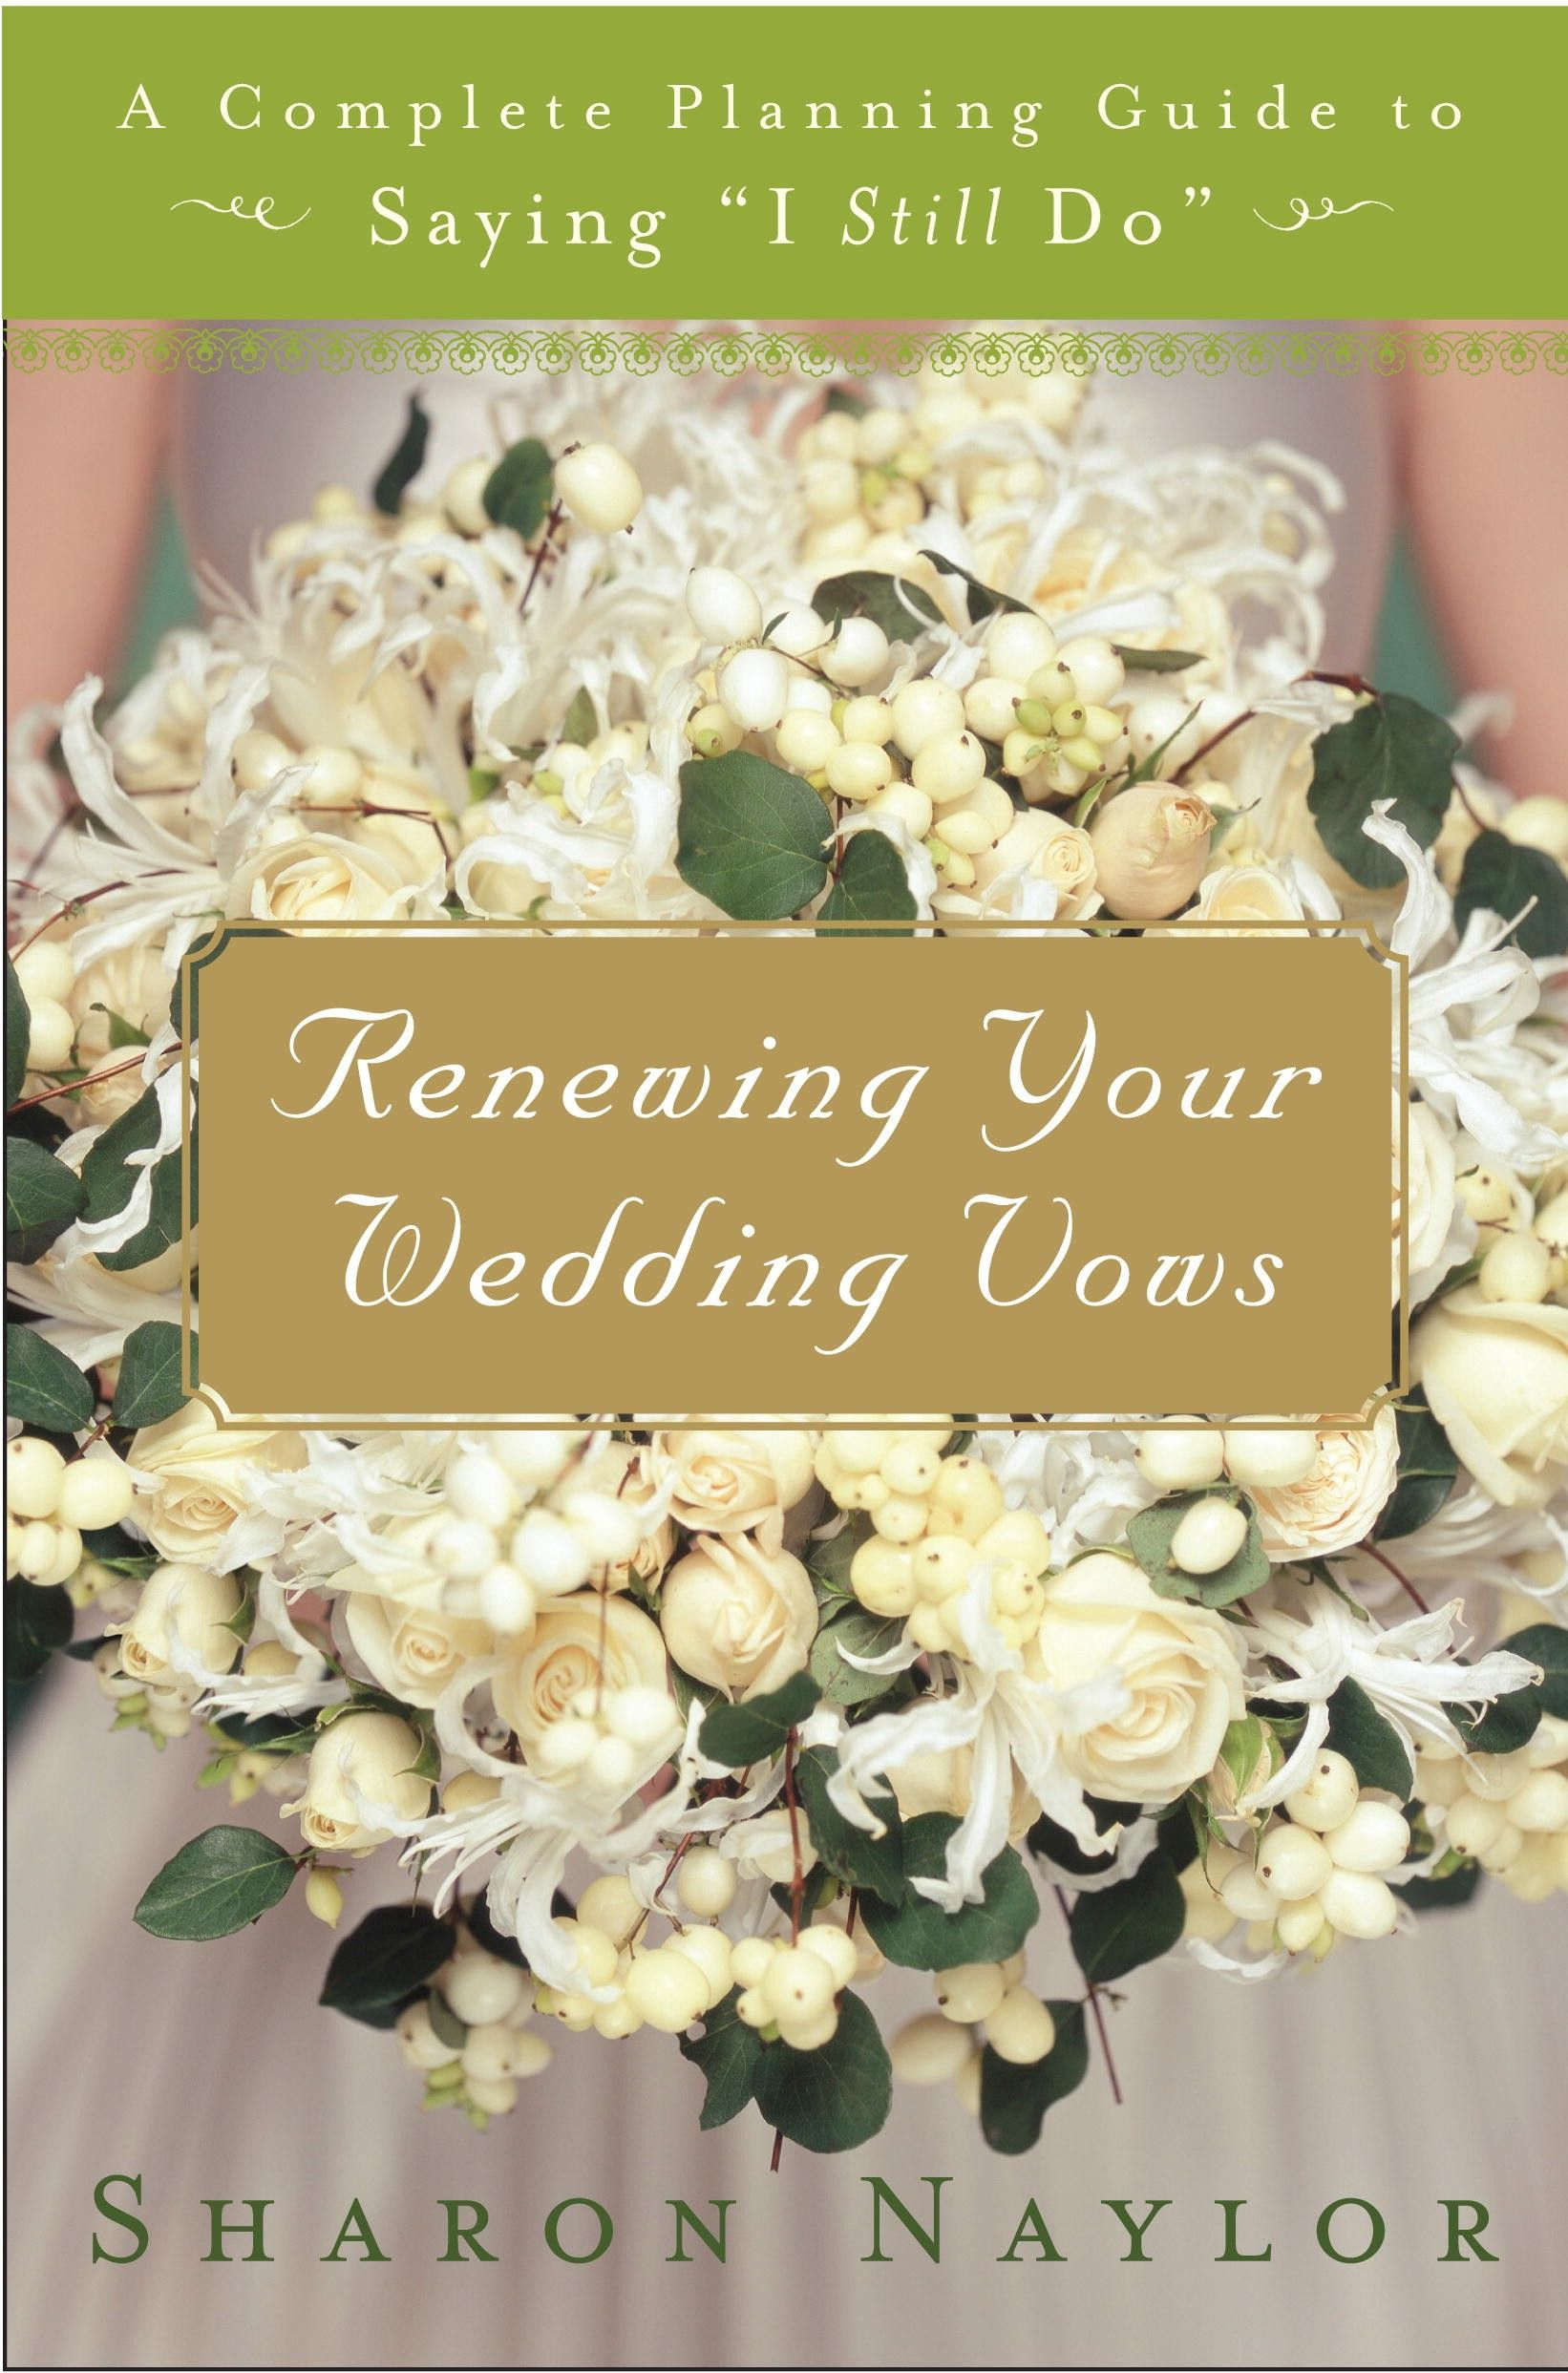 Renewing Your Wedding Vows Is One Of My Favorite Books You Van Renew Anytime Any Way Wish From A Do Over To Just The Two On